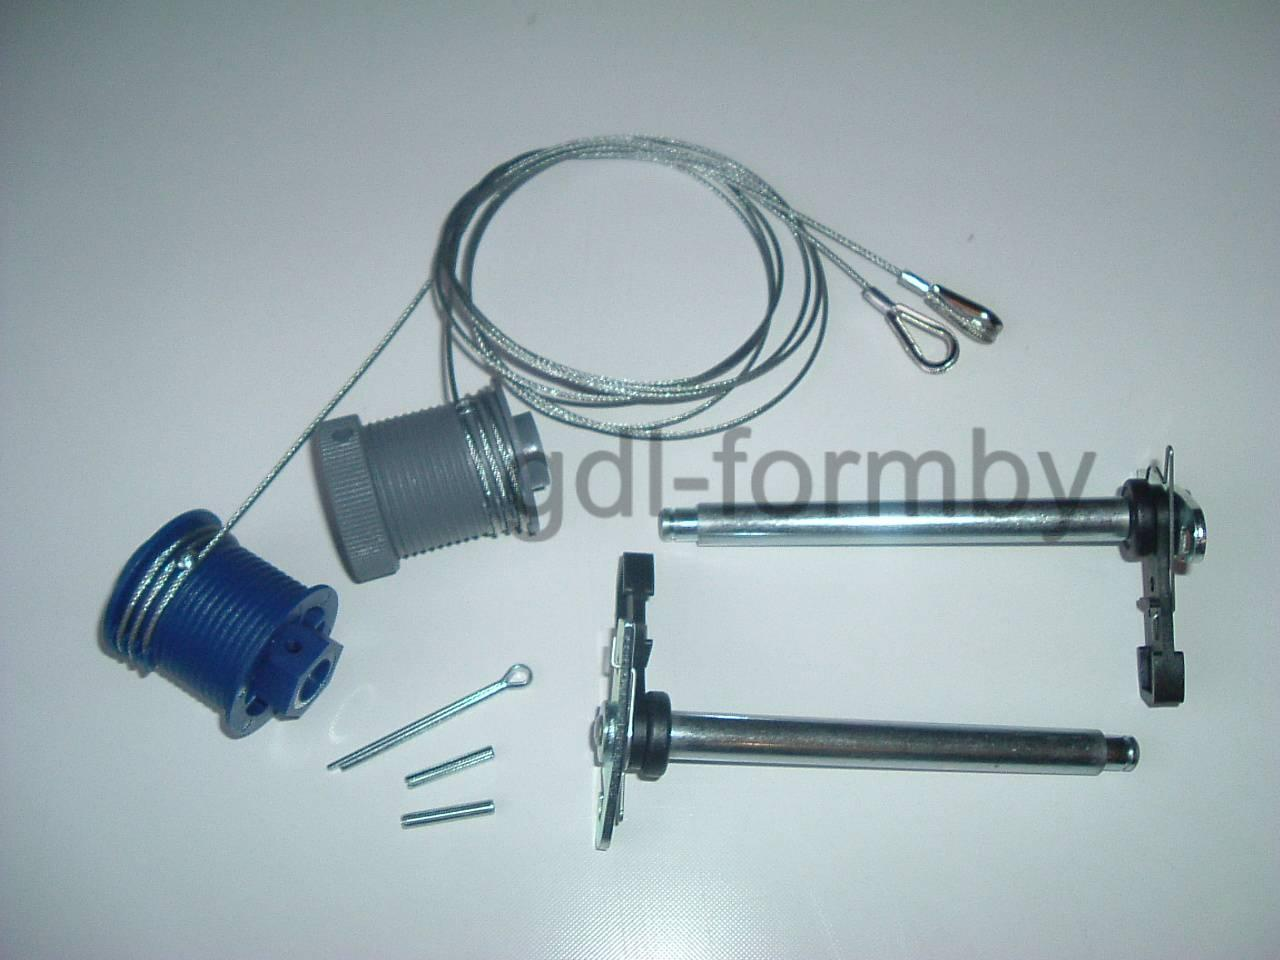 Cardale Cd Pro Safelift Anti Drop Roller Spindles Cables